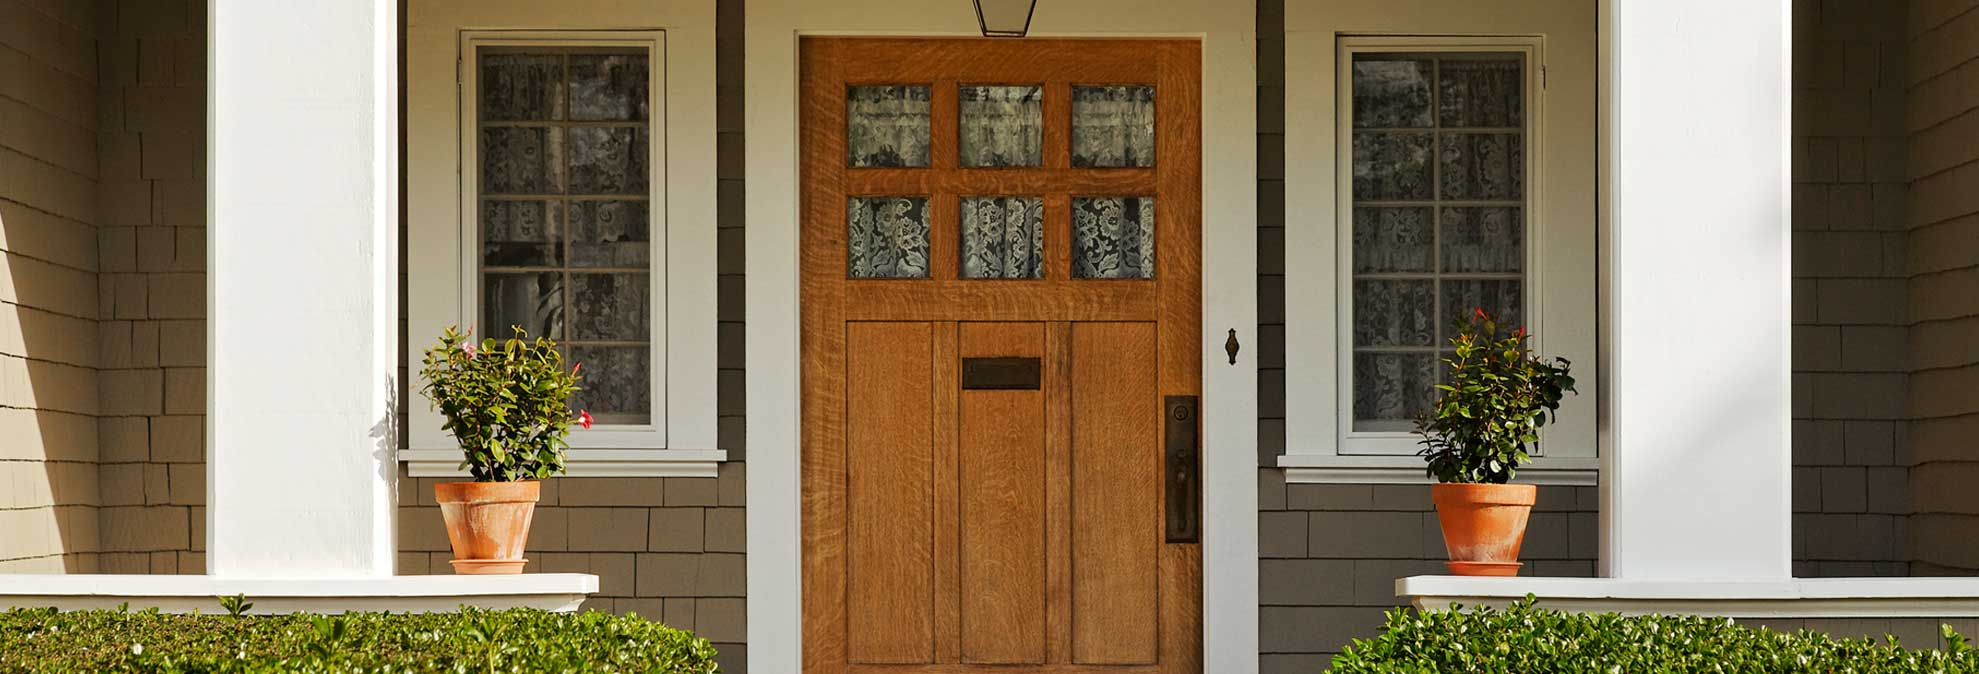 Best Entry Door Buying Guide - Consumer Reports